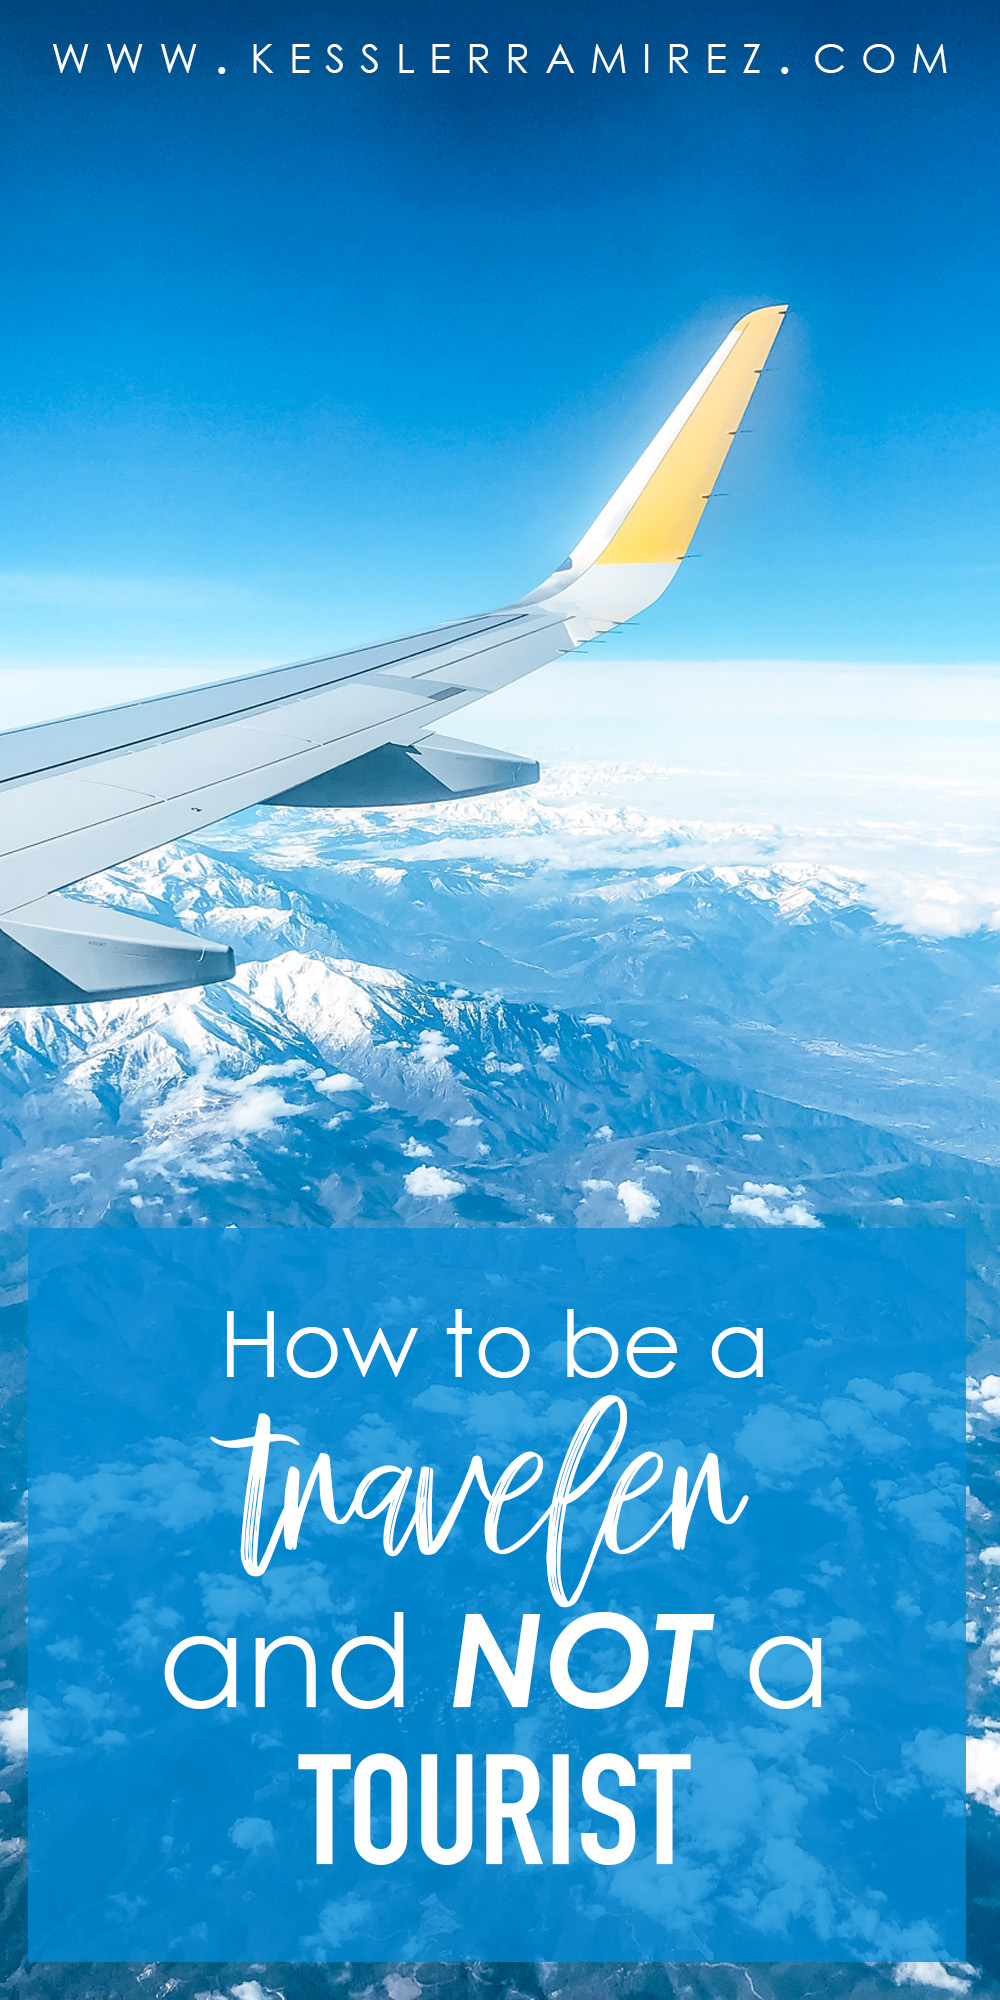 How to be a Traveler and NOT a Tourist